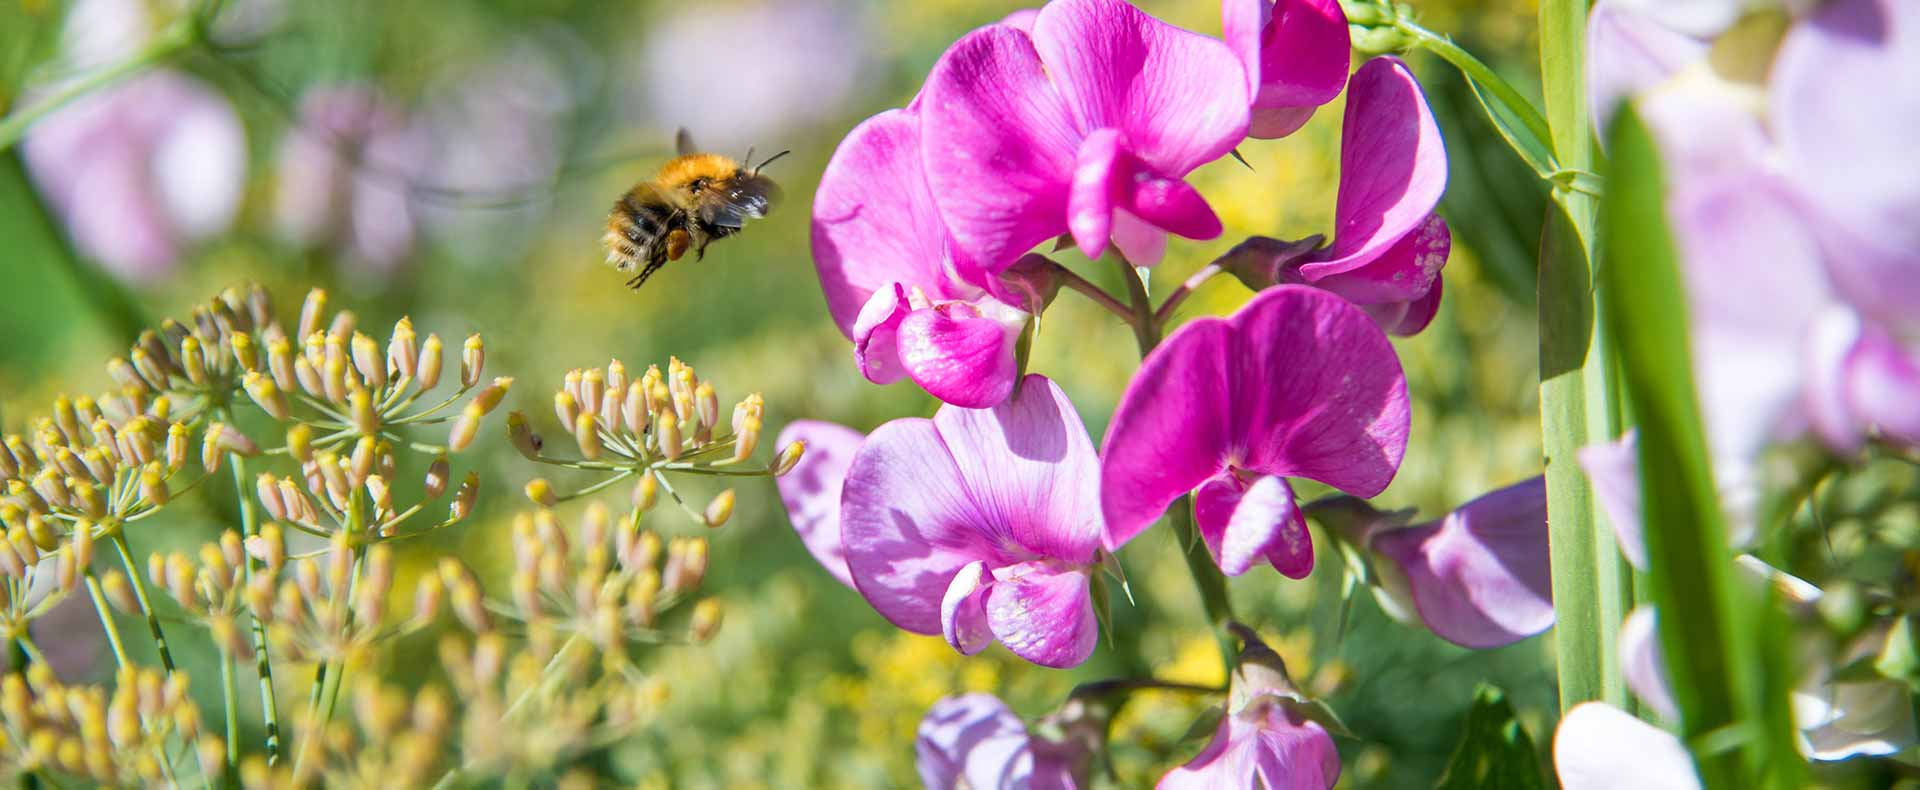 How To Attract Bees To Your Garden | Montagu Arms Blog